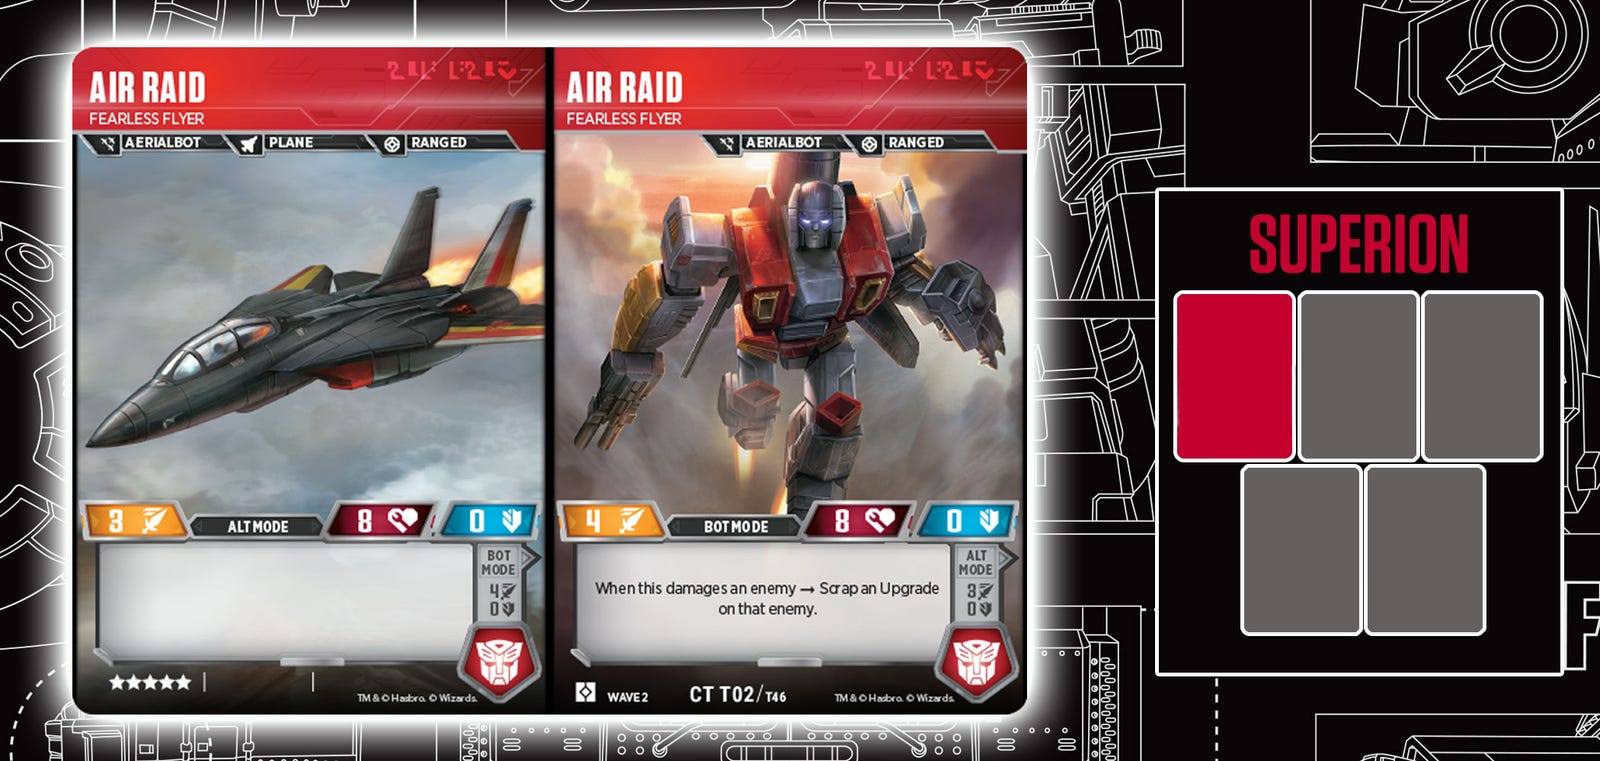 An exclusive look at the Aerialbot cards you'll need to make Superion a part of your team.